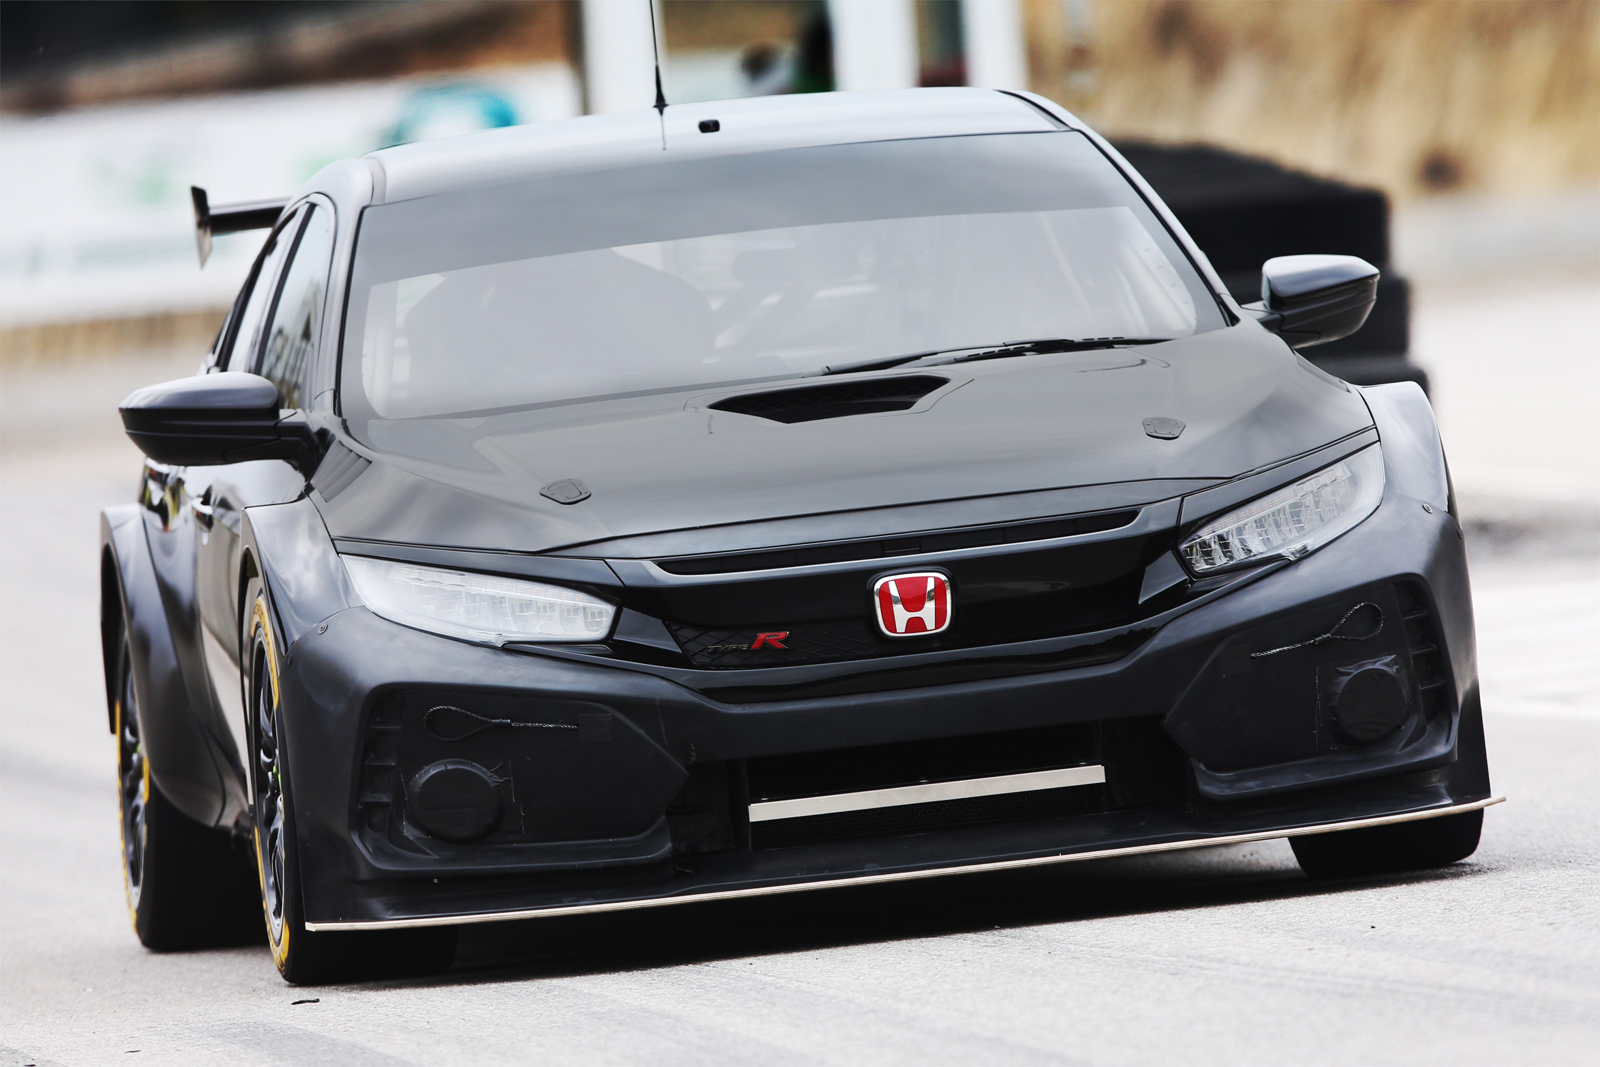 The Honda Civic Type R Makes for a Mean Looking Race Car » AutoGuide